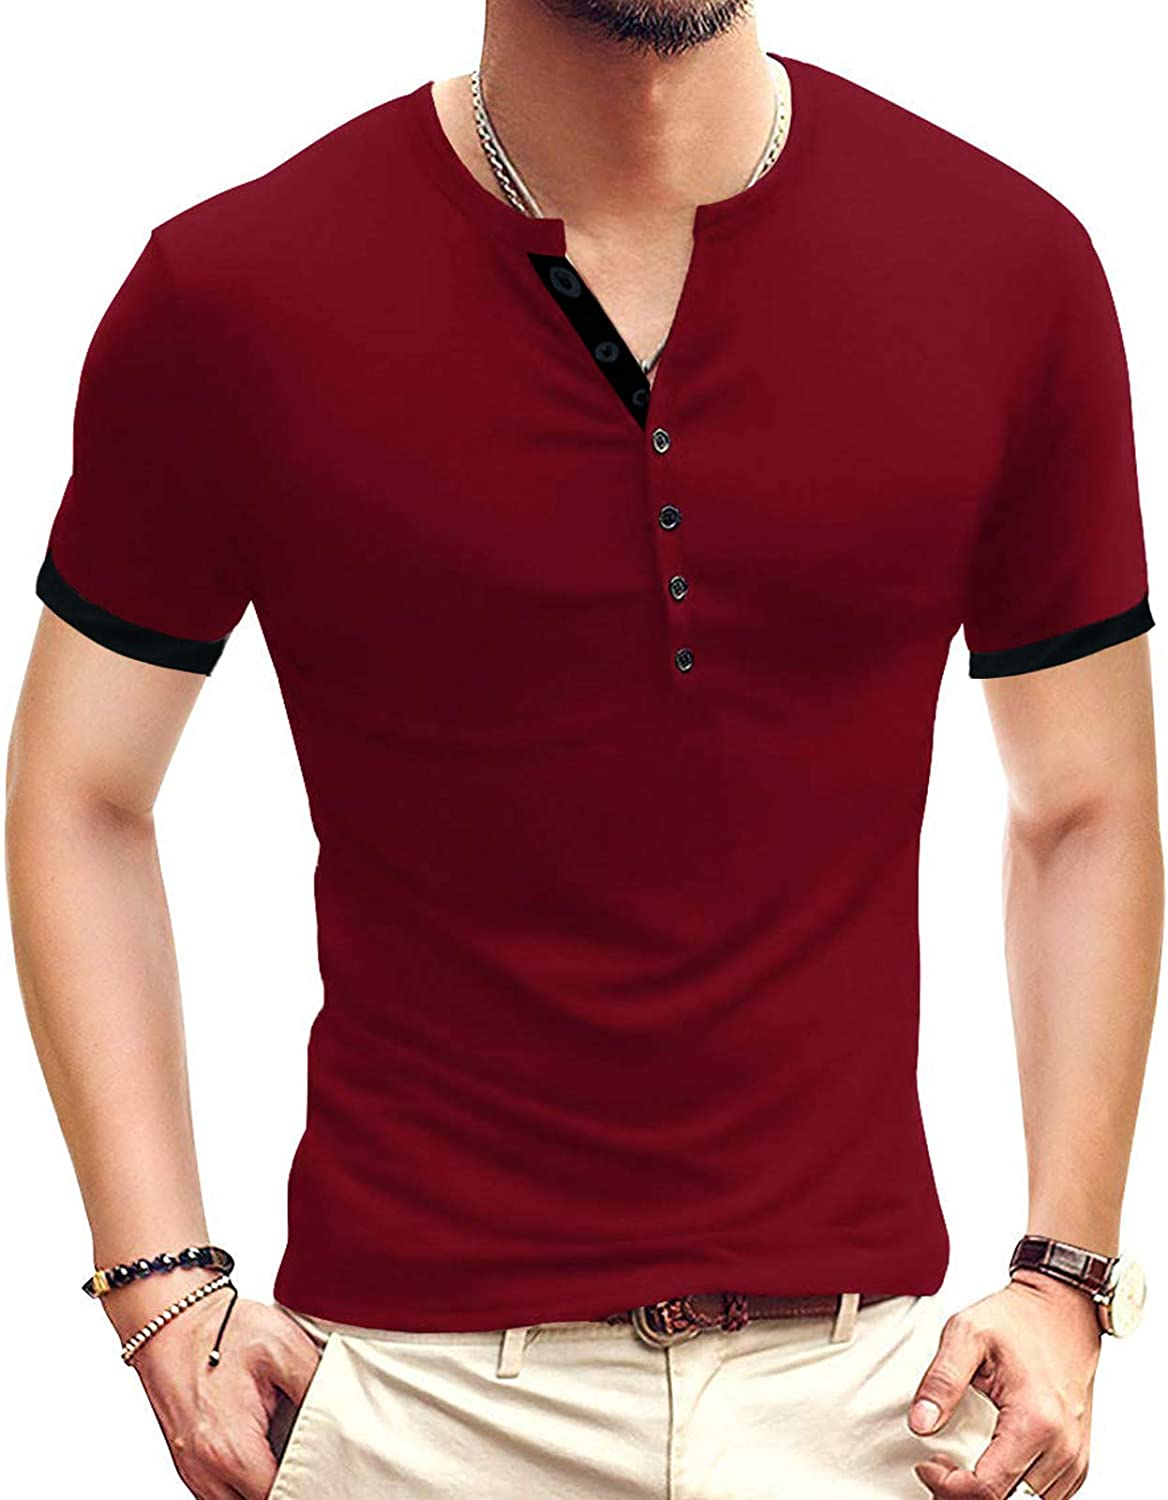 Ranberone Mens Slim Fit Short Sleeve All stores are sold Henley S Reservation Casual Shirt Basic